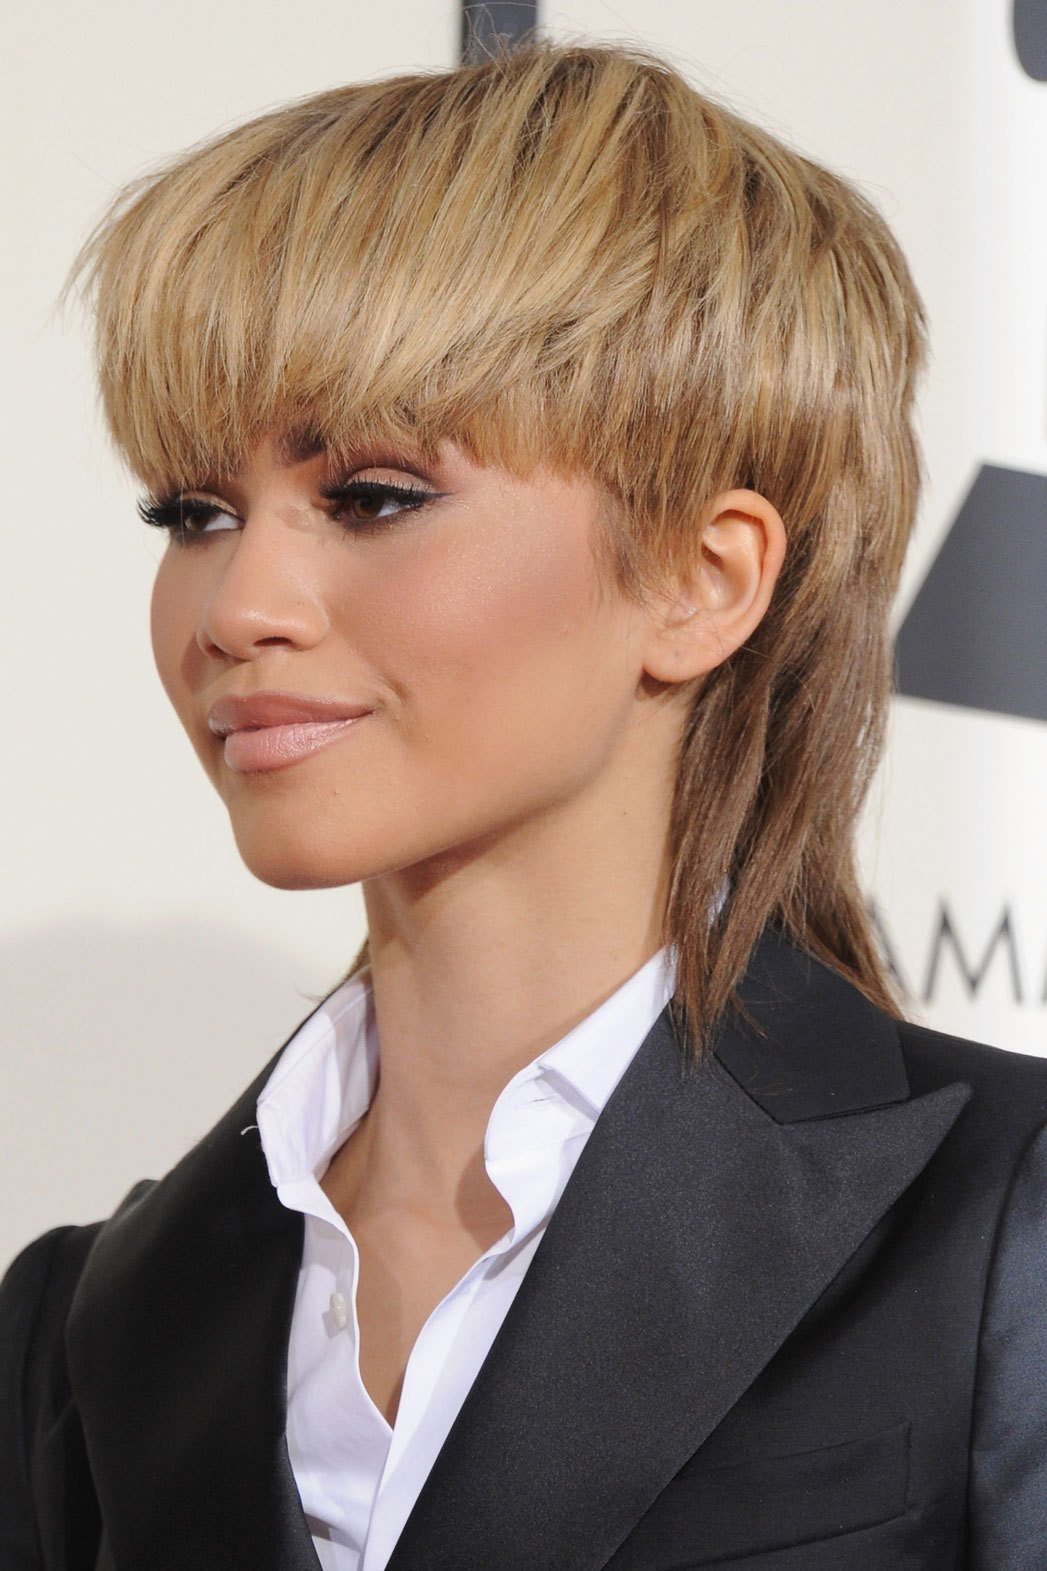 The Best Zendaya On Grammys 2016 Mullet Hairstyle Pret A Reporter Pictures